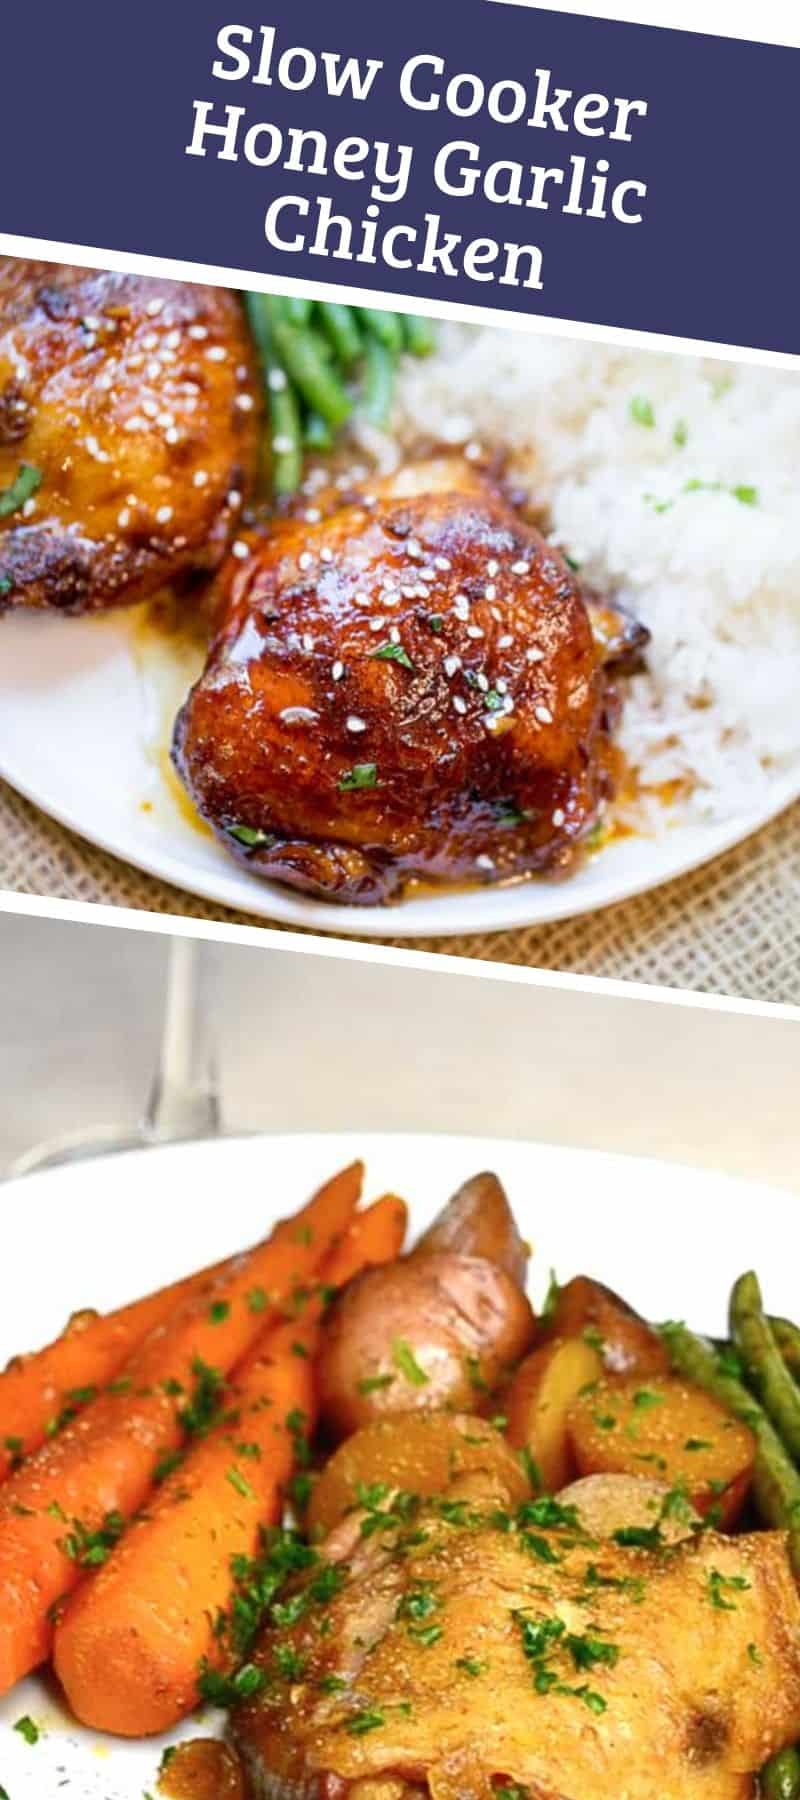 Slow Cooker Honey Garlic Chicken 3